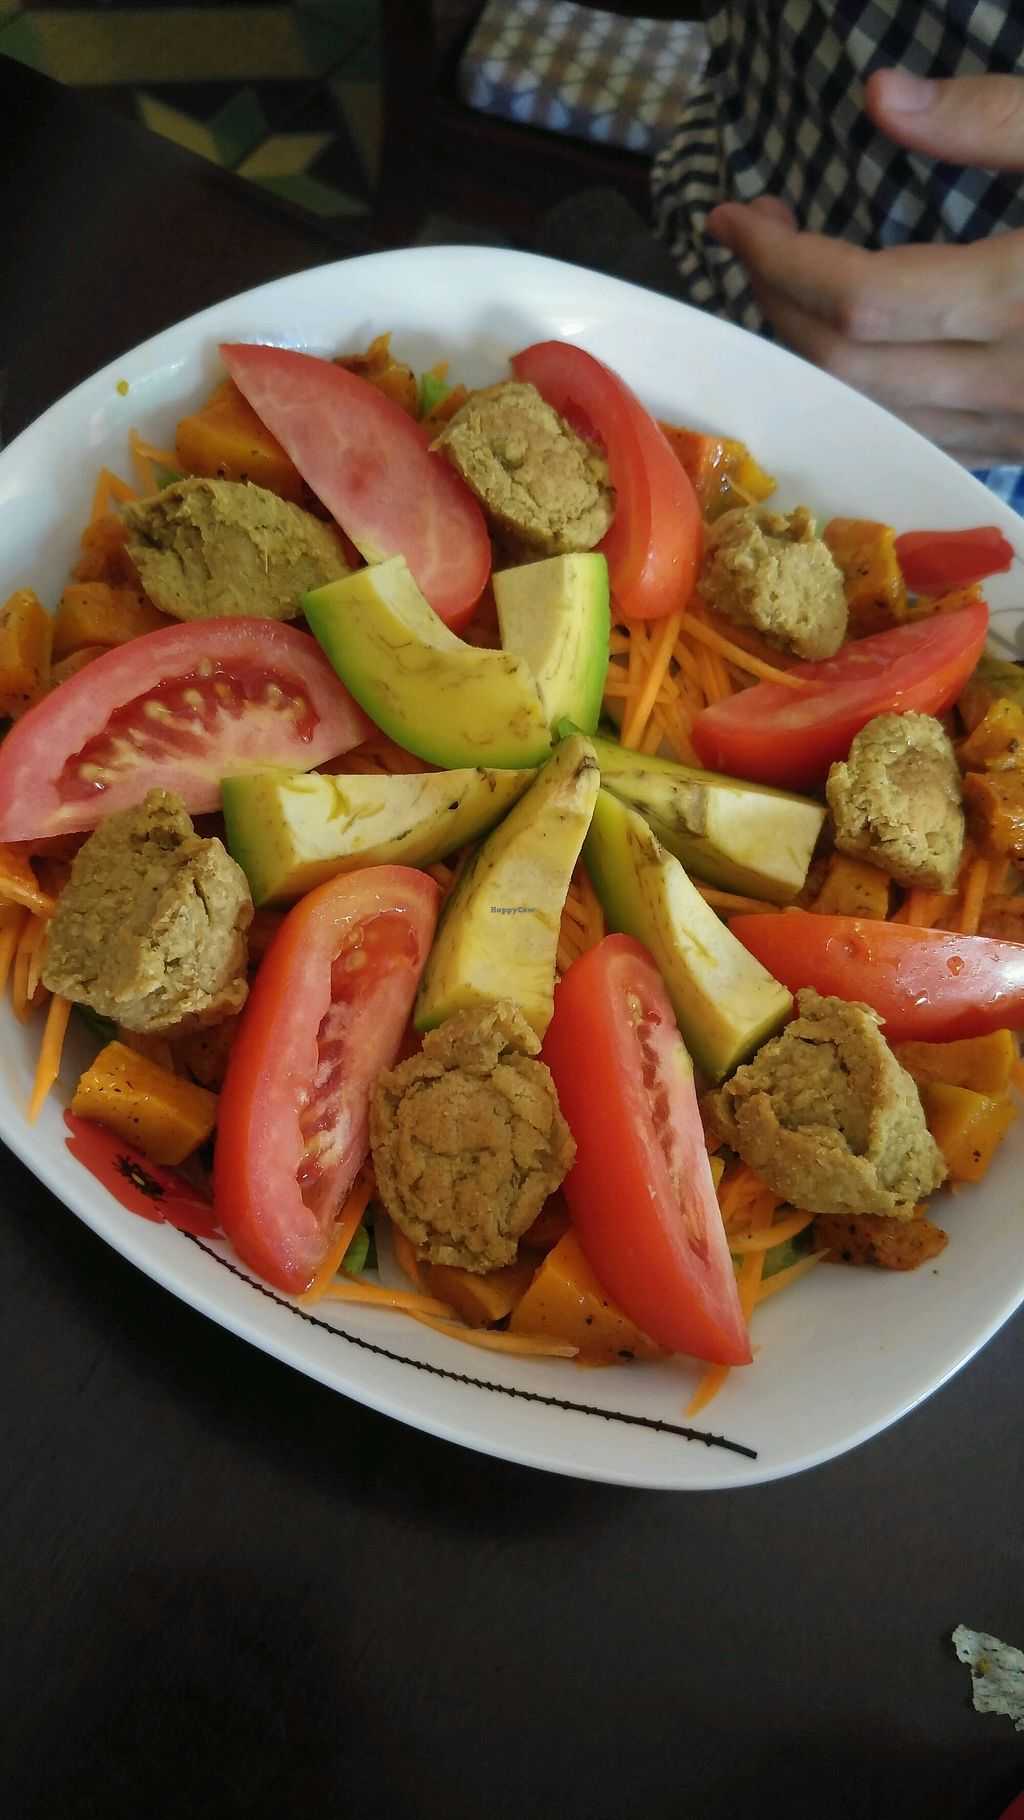 """Photo of Chookie's  by <a href=""""/members/profile/daveVN"""">daveVN</a> <br/>falafel salad <br/> September 8, 2017  - <a href='/contact/abuse/image/61478/302217'>Report</a>"""